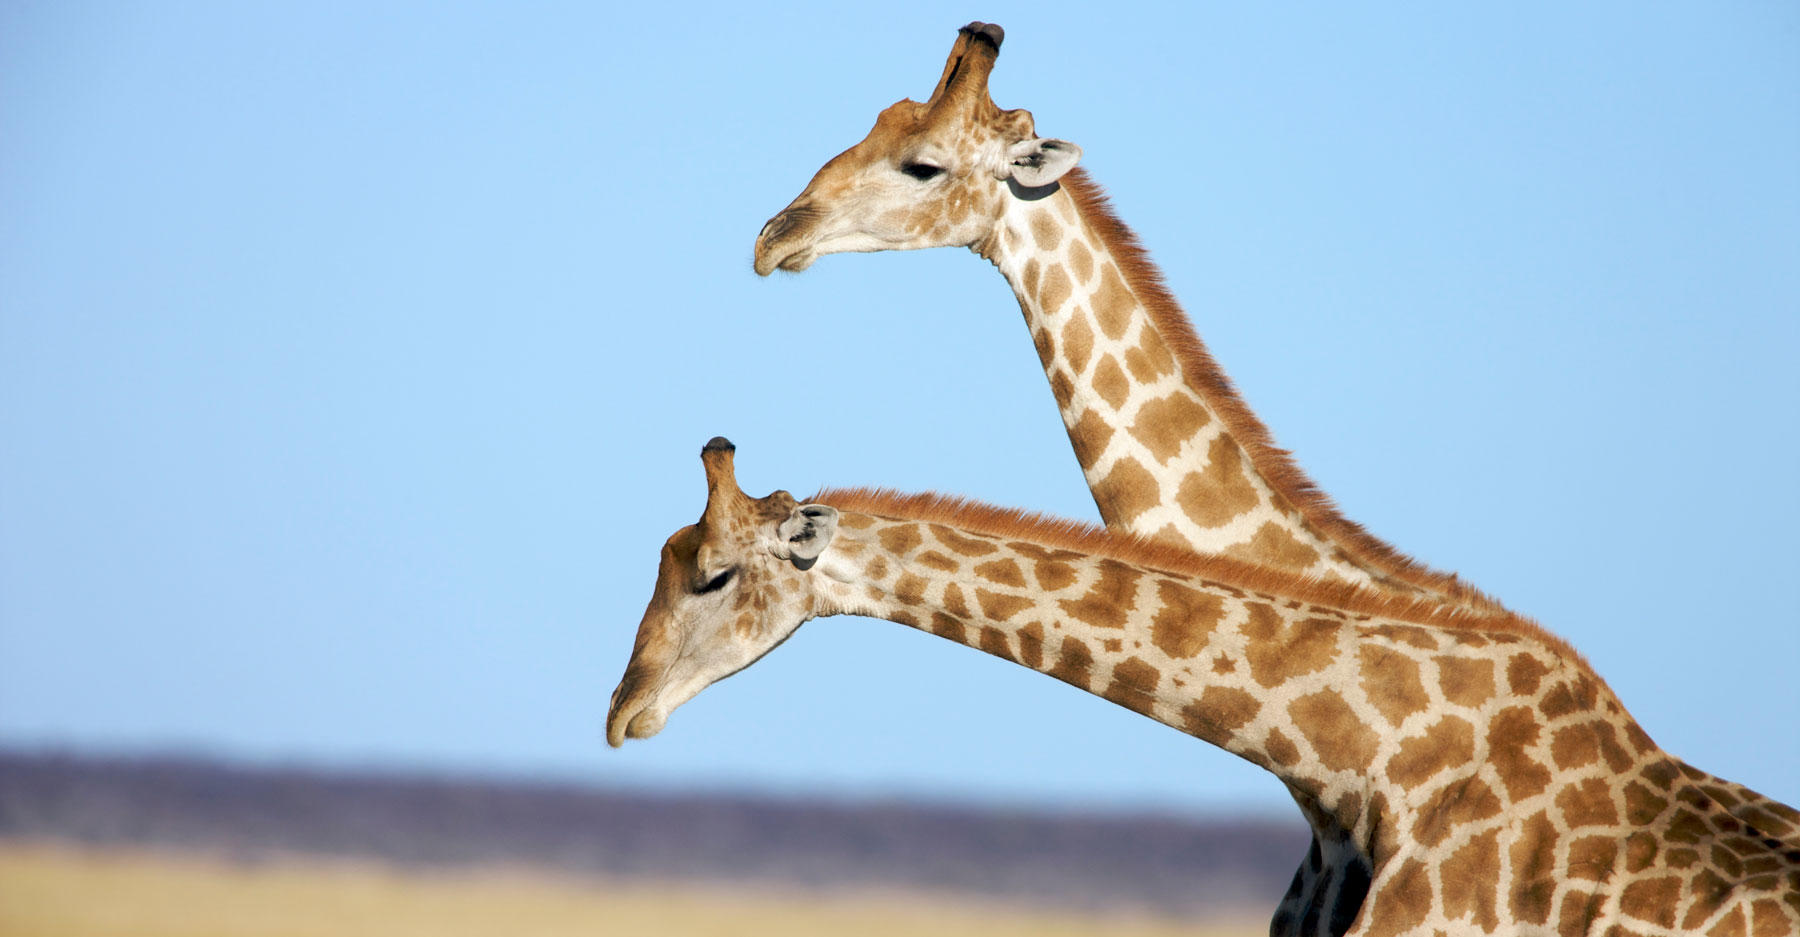 Two giraffes with long necks